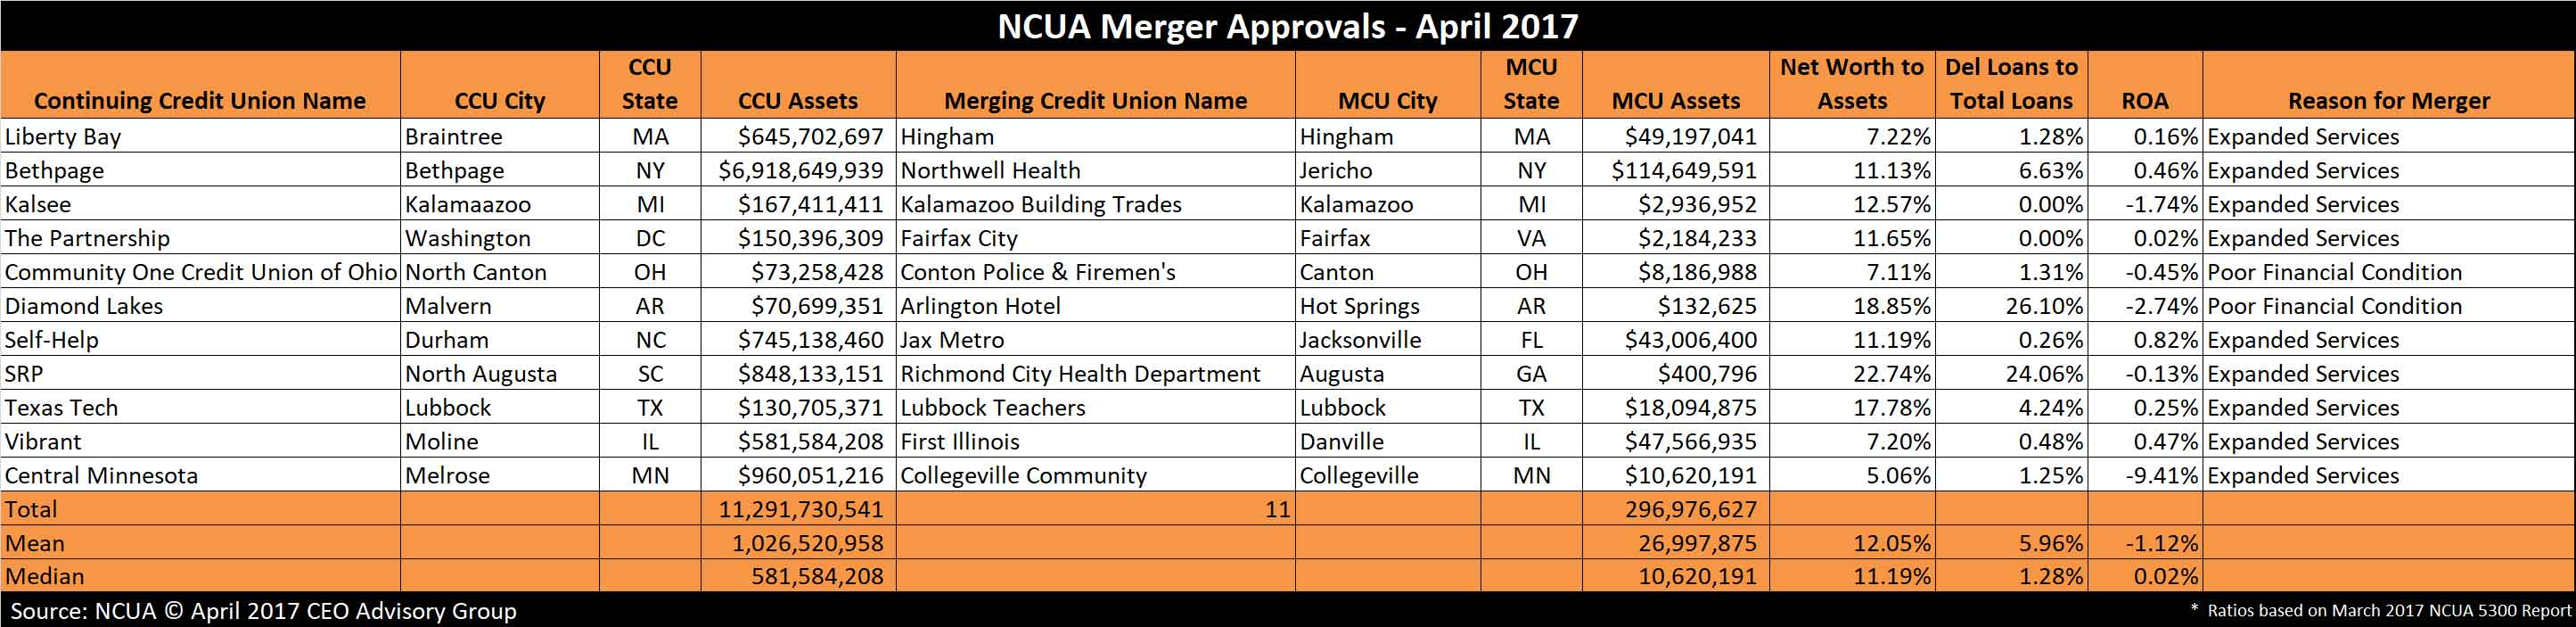 Credit Union Mergers - April 2017